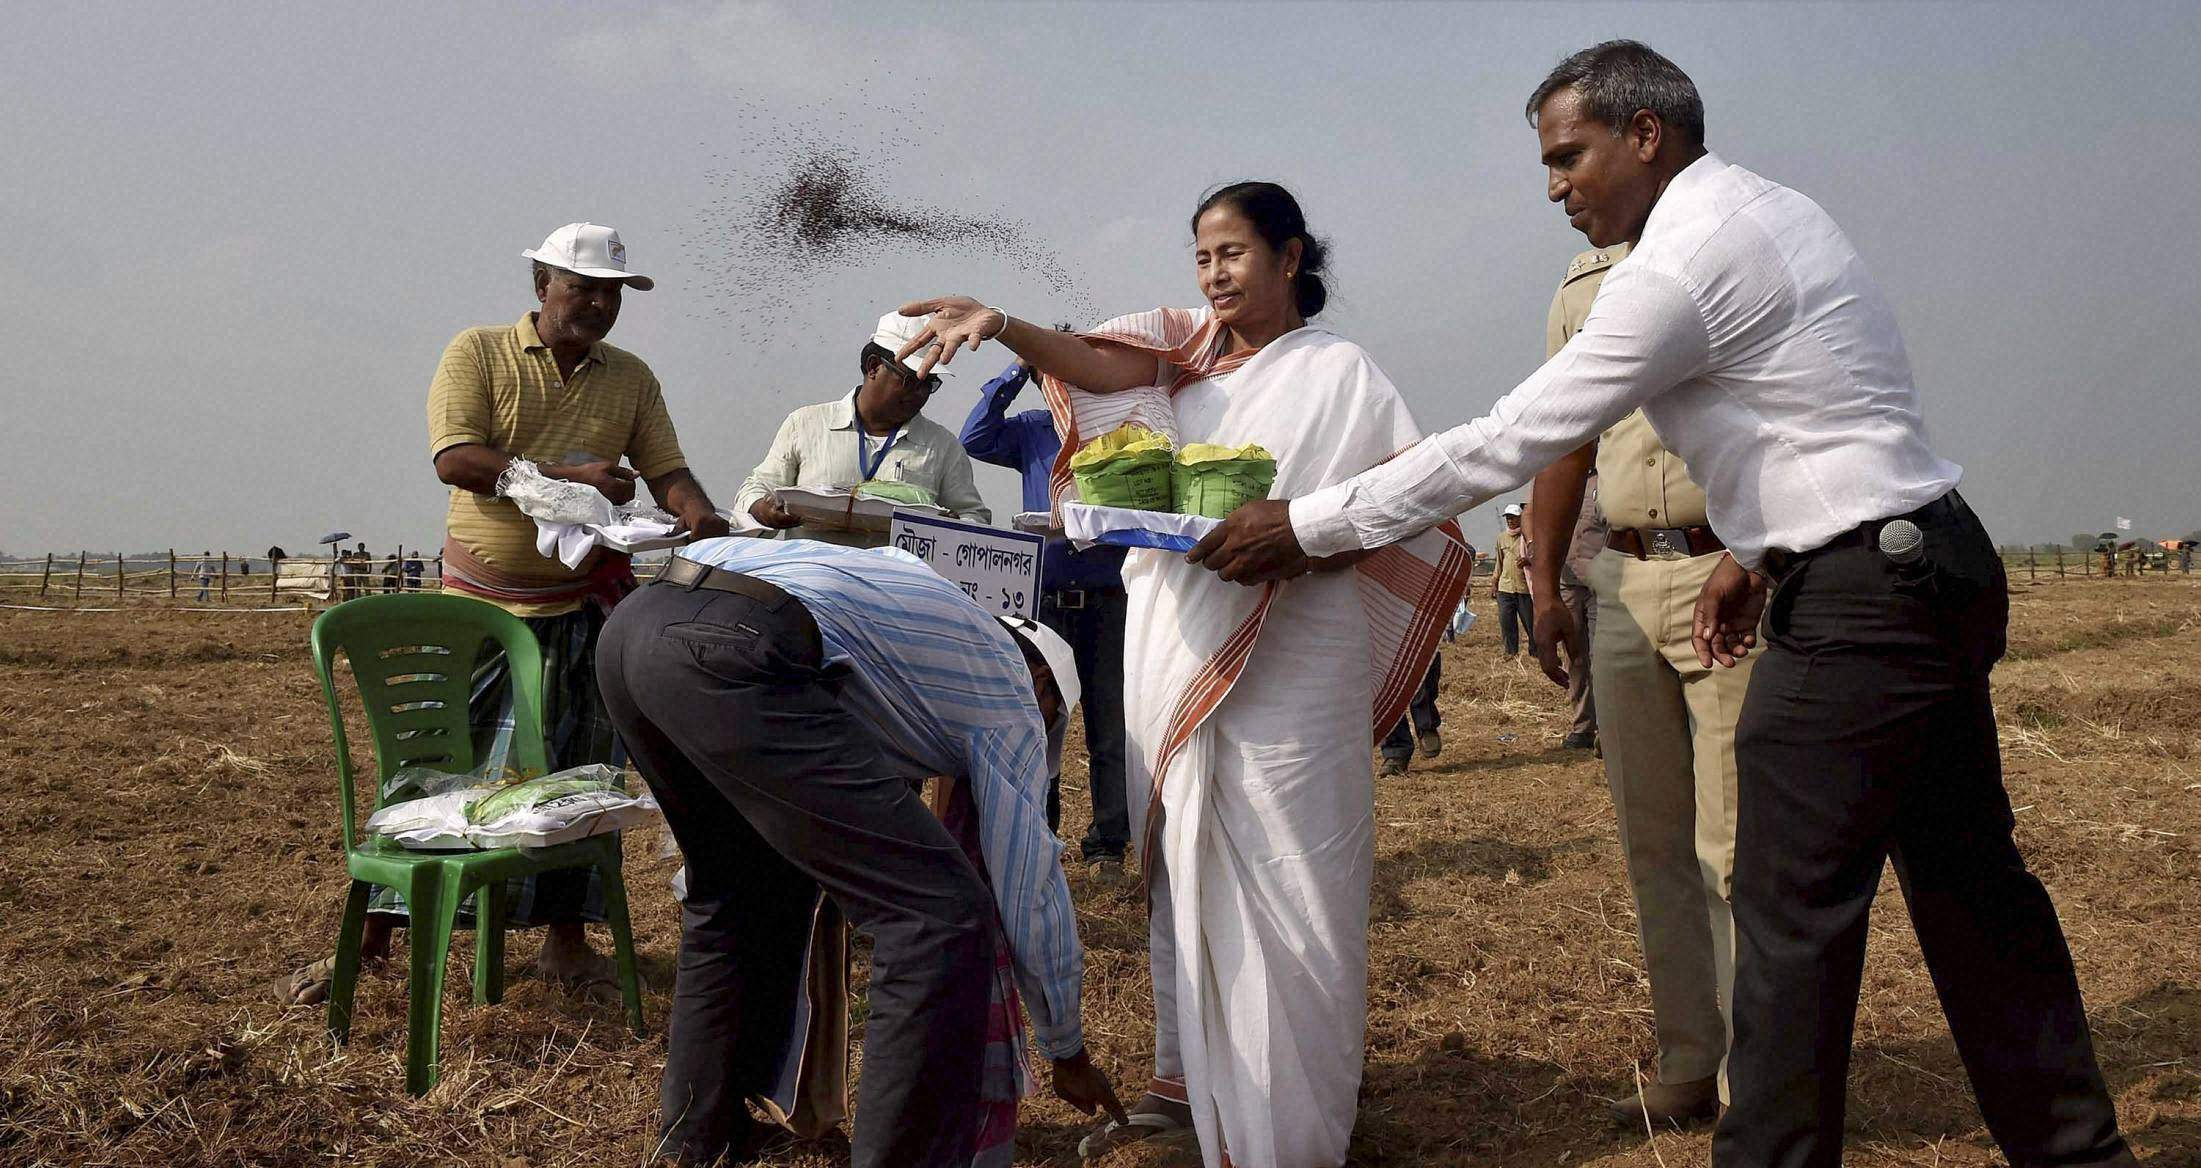 West Bengal Chief Minister Mamata Banerjee sowing master seeds with farmers at the land handed over to the farmers, in Singur. | PTI File Photo